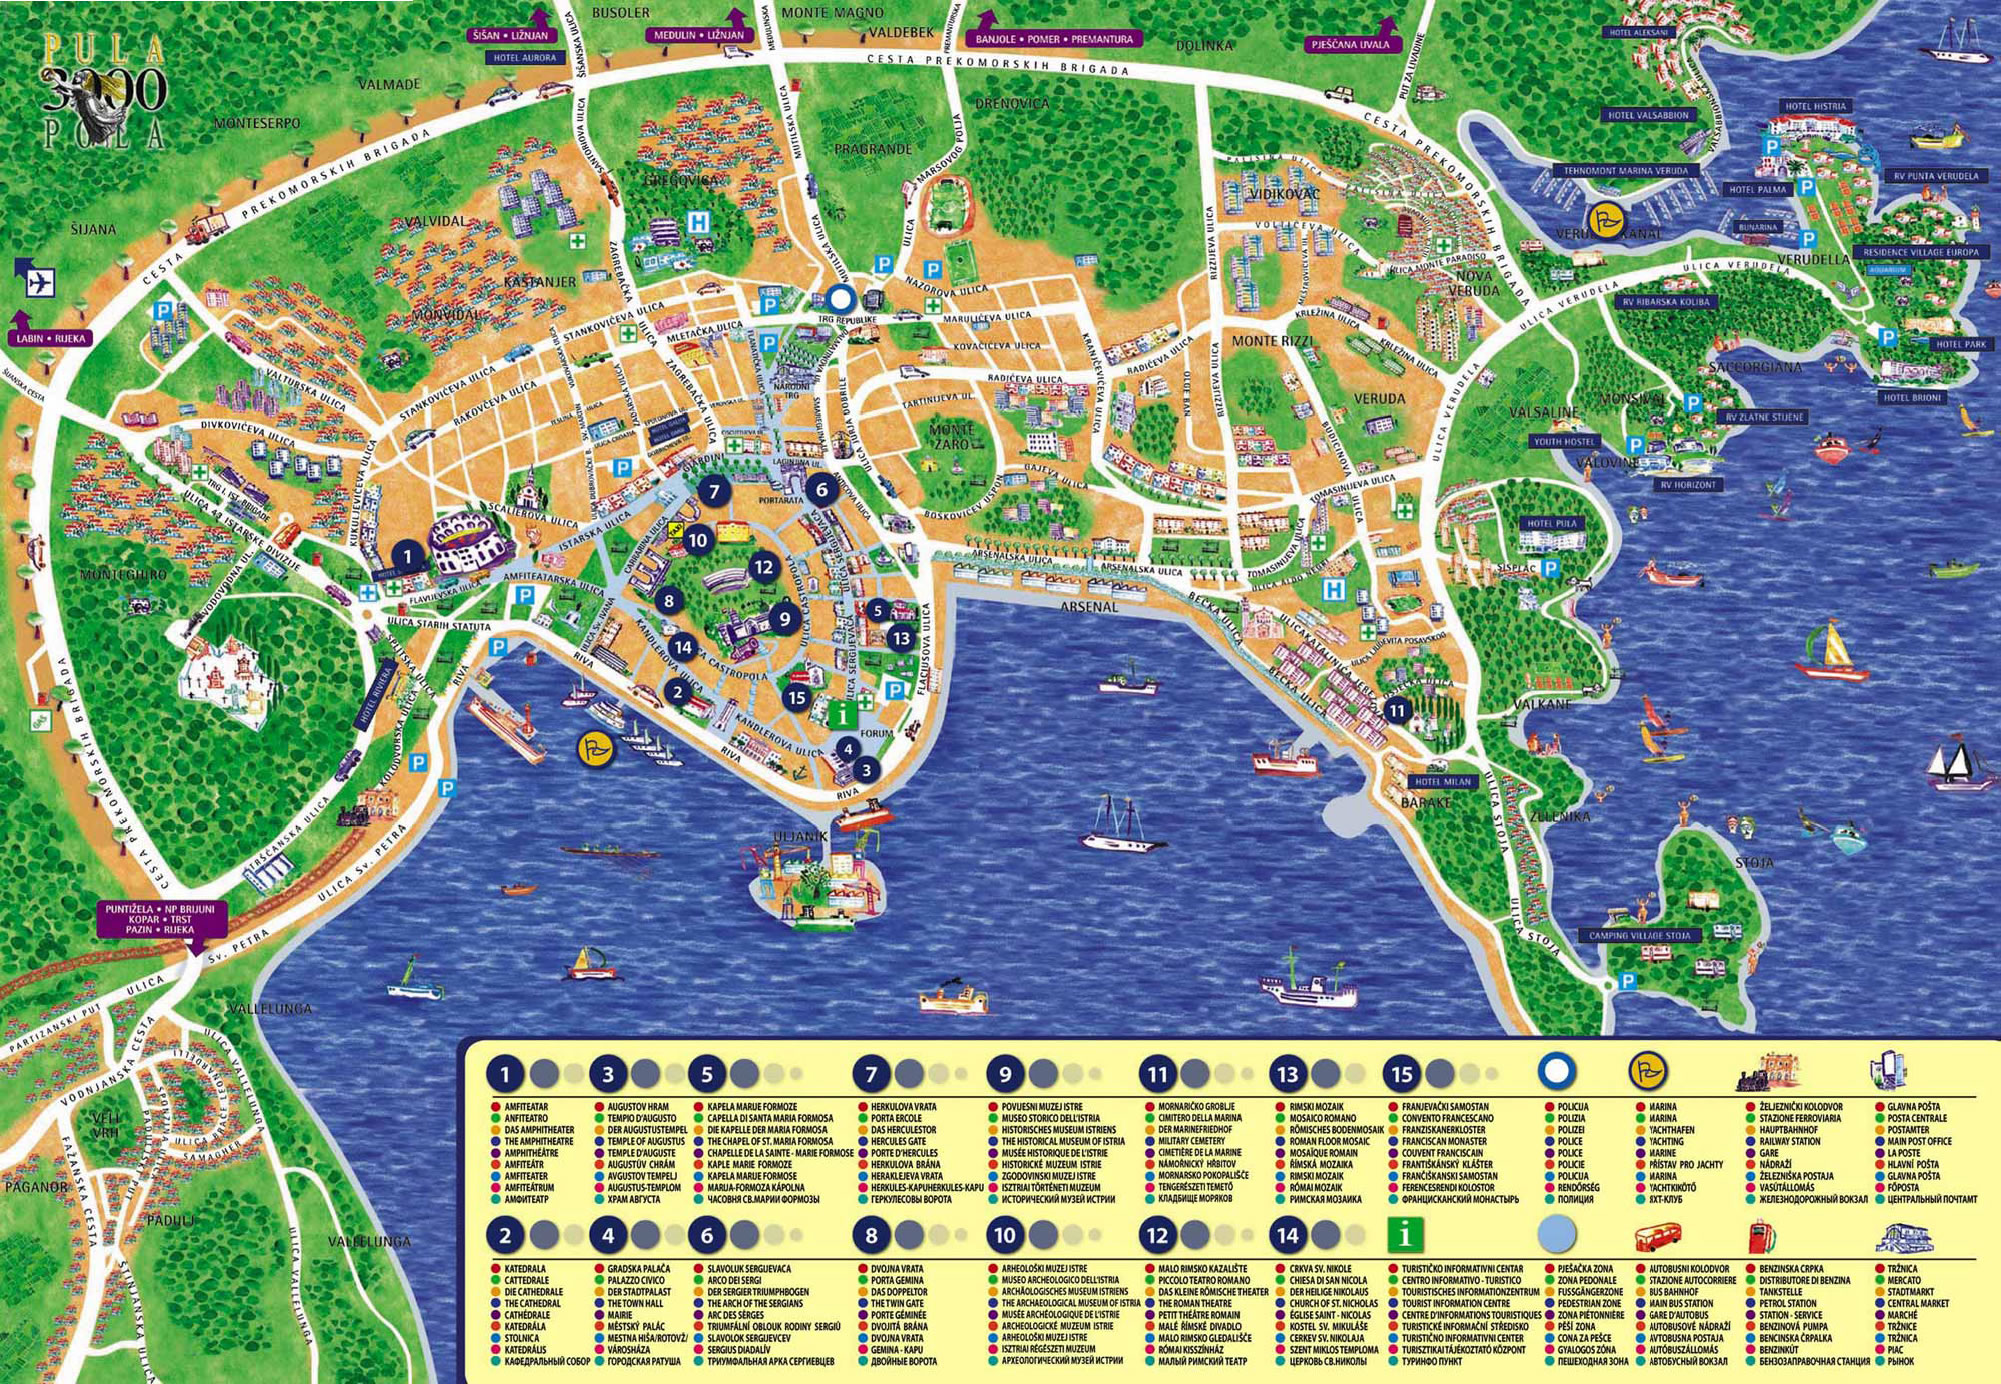 vodice karta ulica Pula, Croatia   city or destination online map, town maps free  vodice karta ulica